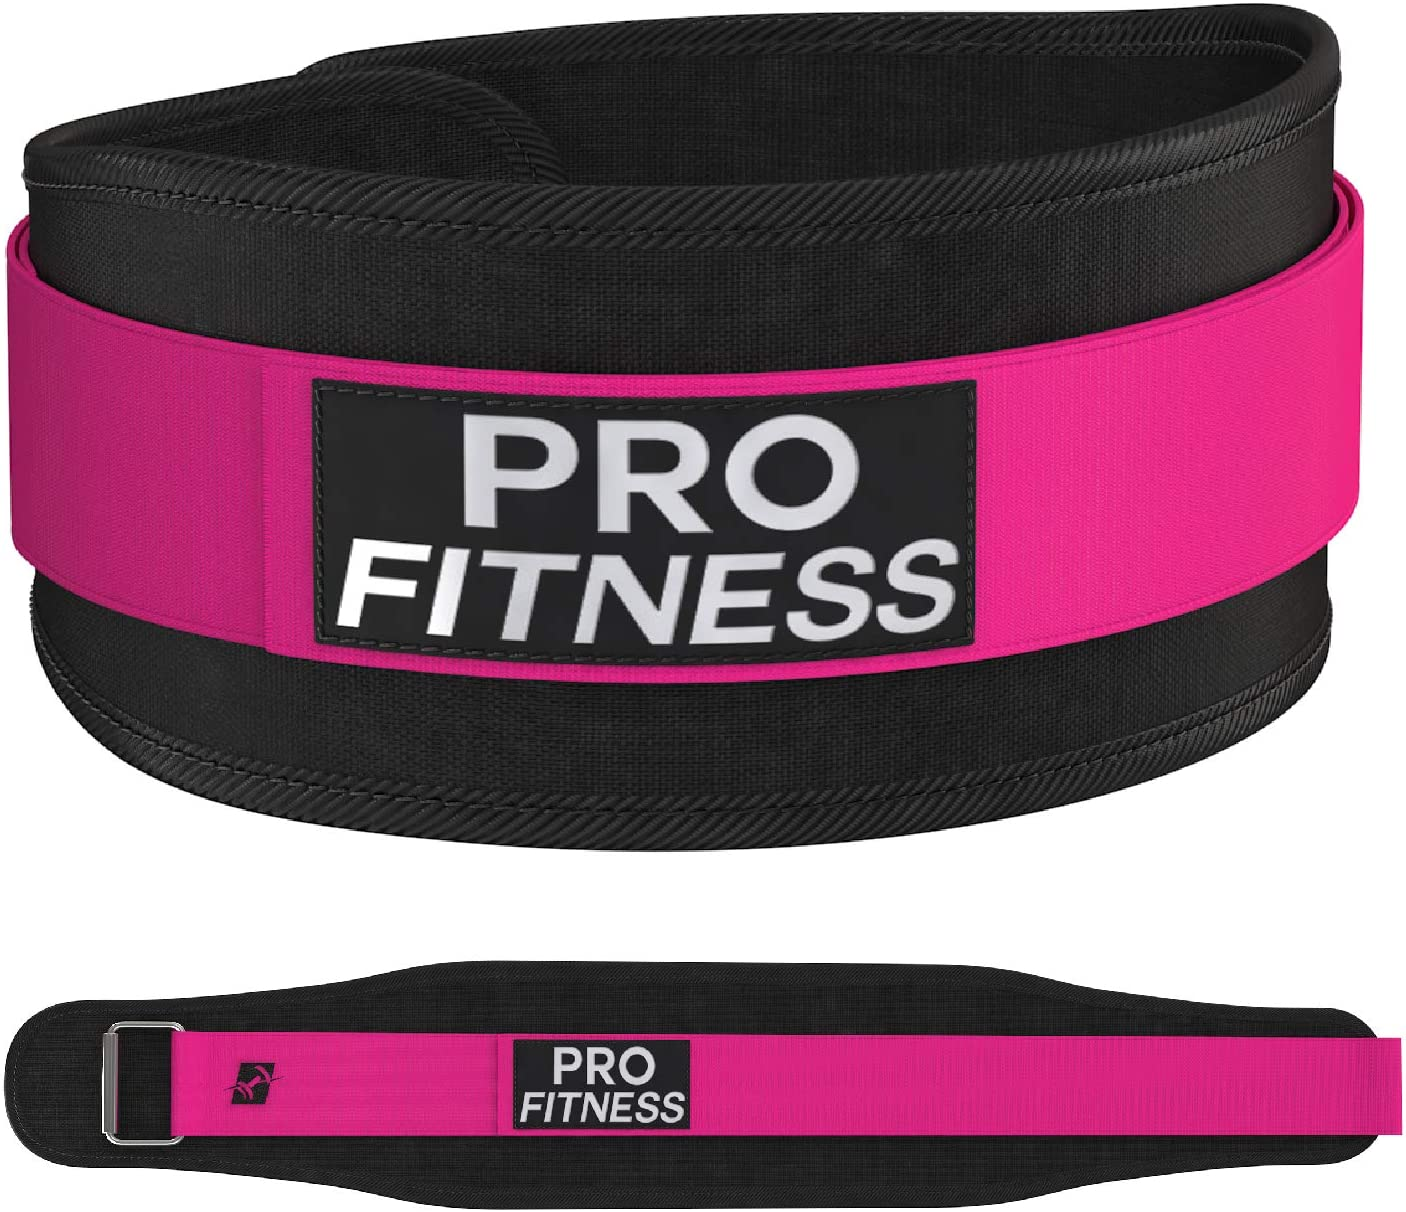 ProFitness Weight Lifting Belt for Women 4 Inchs Wide – Comfortable Durable Weightlifting Workout Belt – Great Lower Back Lumbar Support for Squats, Deadlifts, Cross Training, Gym Workouts